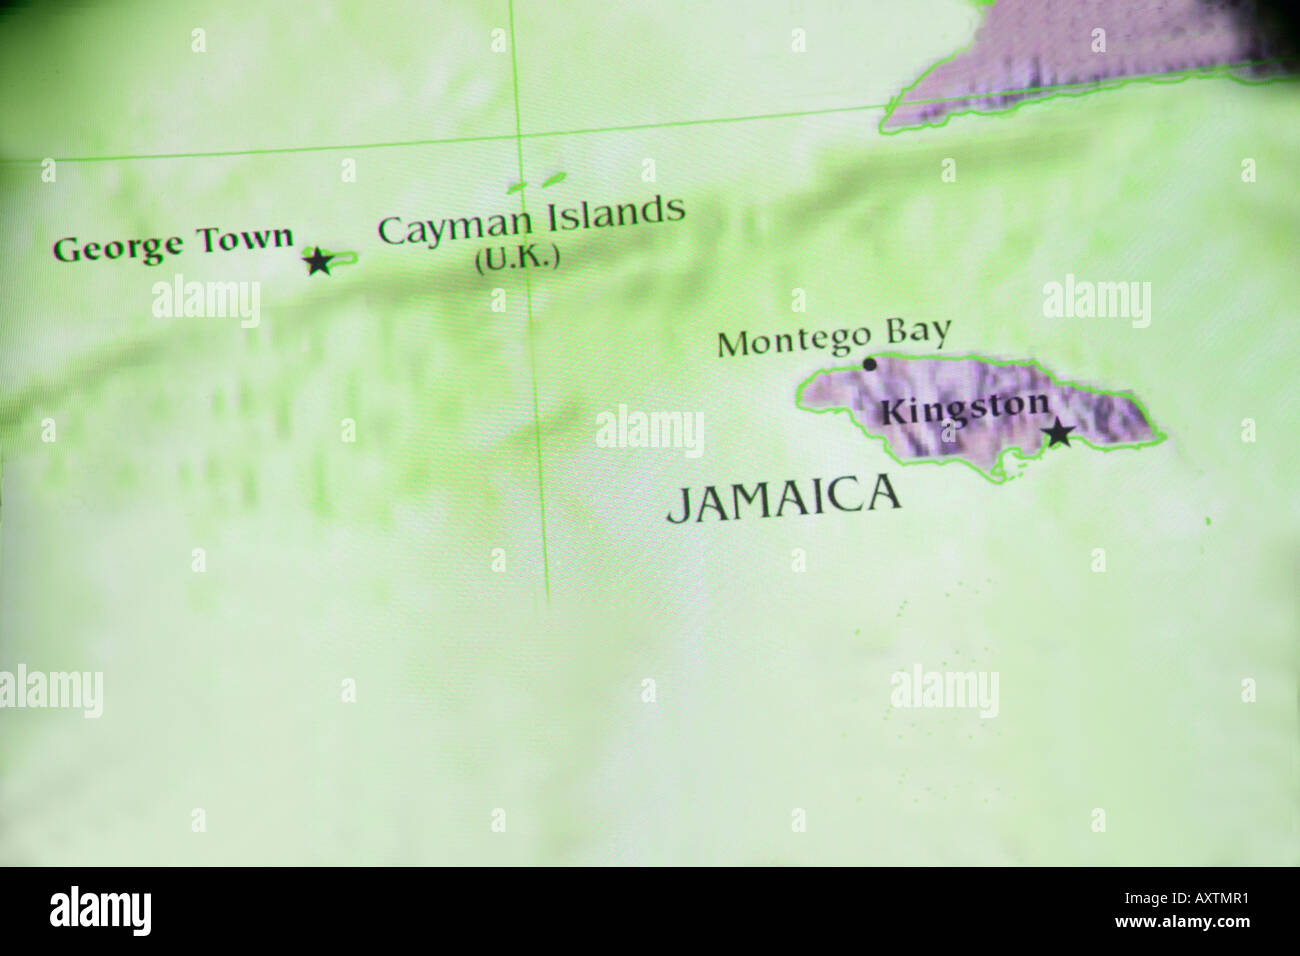 Close-up map showing the countries Jamaica and the Cayman ... on greece map, caribbean island cruise, caribbean island names, jamaica map, tanzania map, bahrain map, virgin islands map, south america map, puerto rico map, dominican republic map, central america map, belgium map, panama map, netherlands map, georgia map, san juan islands map, iraq map, brazil map, japan map, italy map,